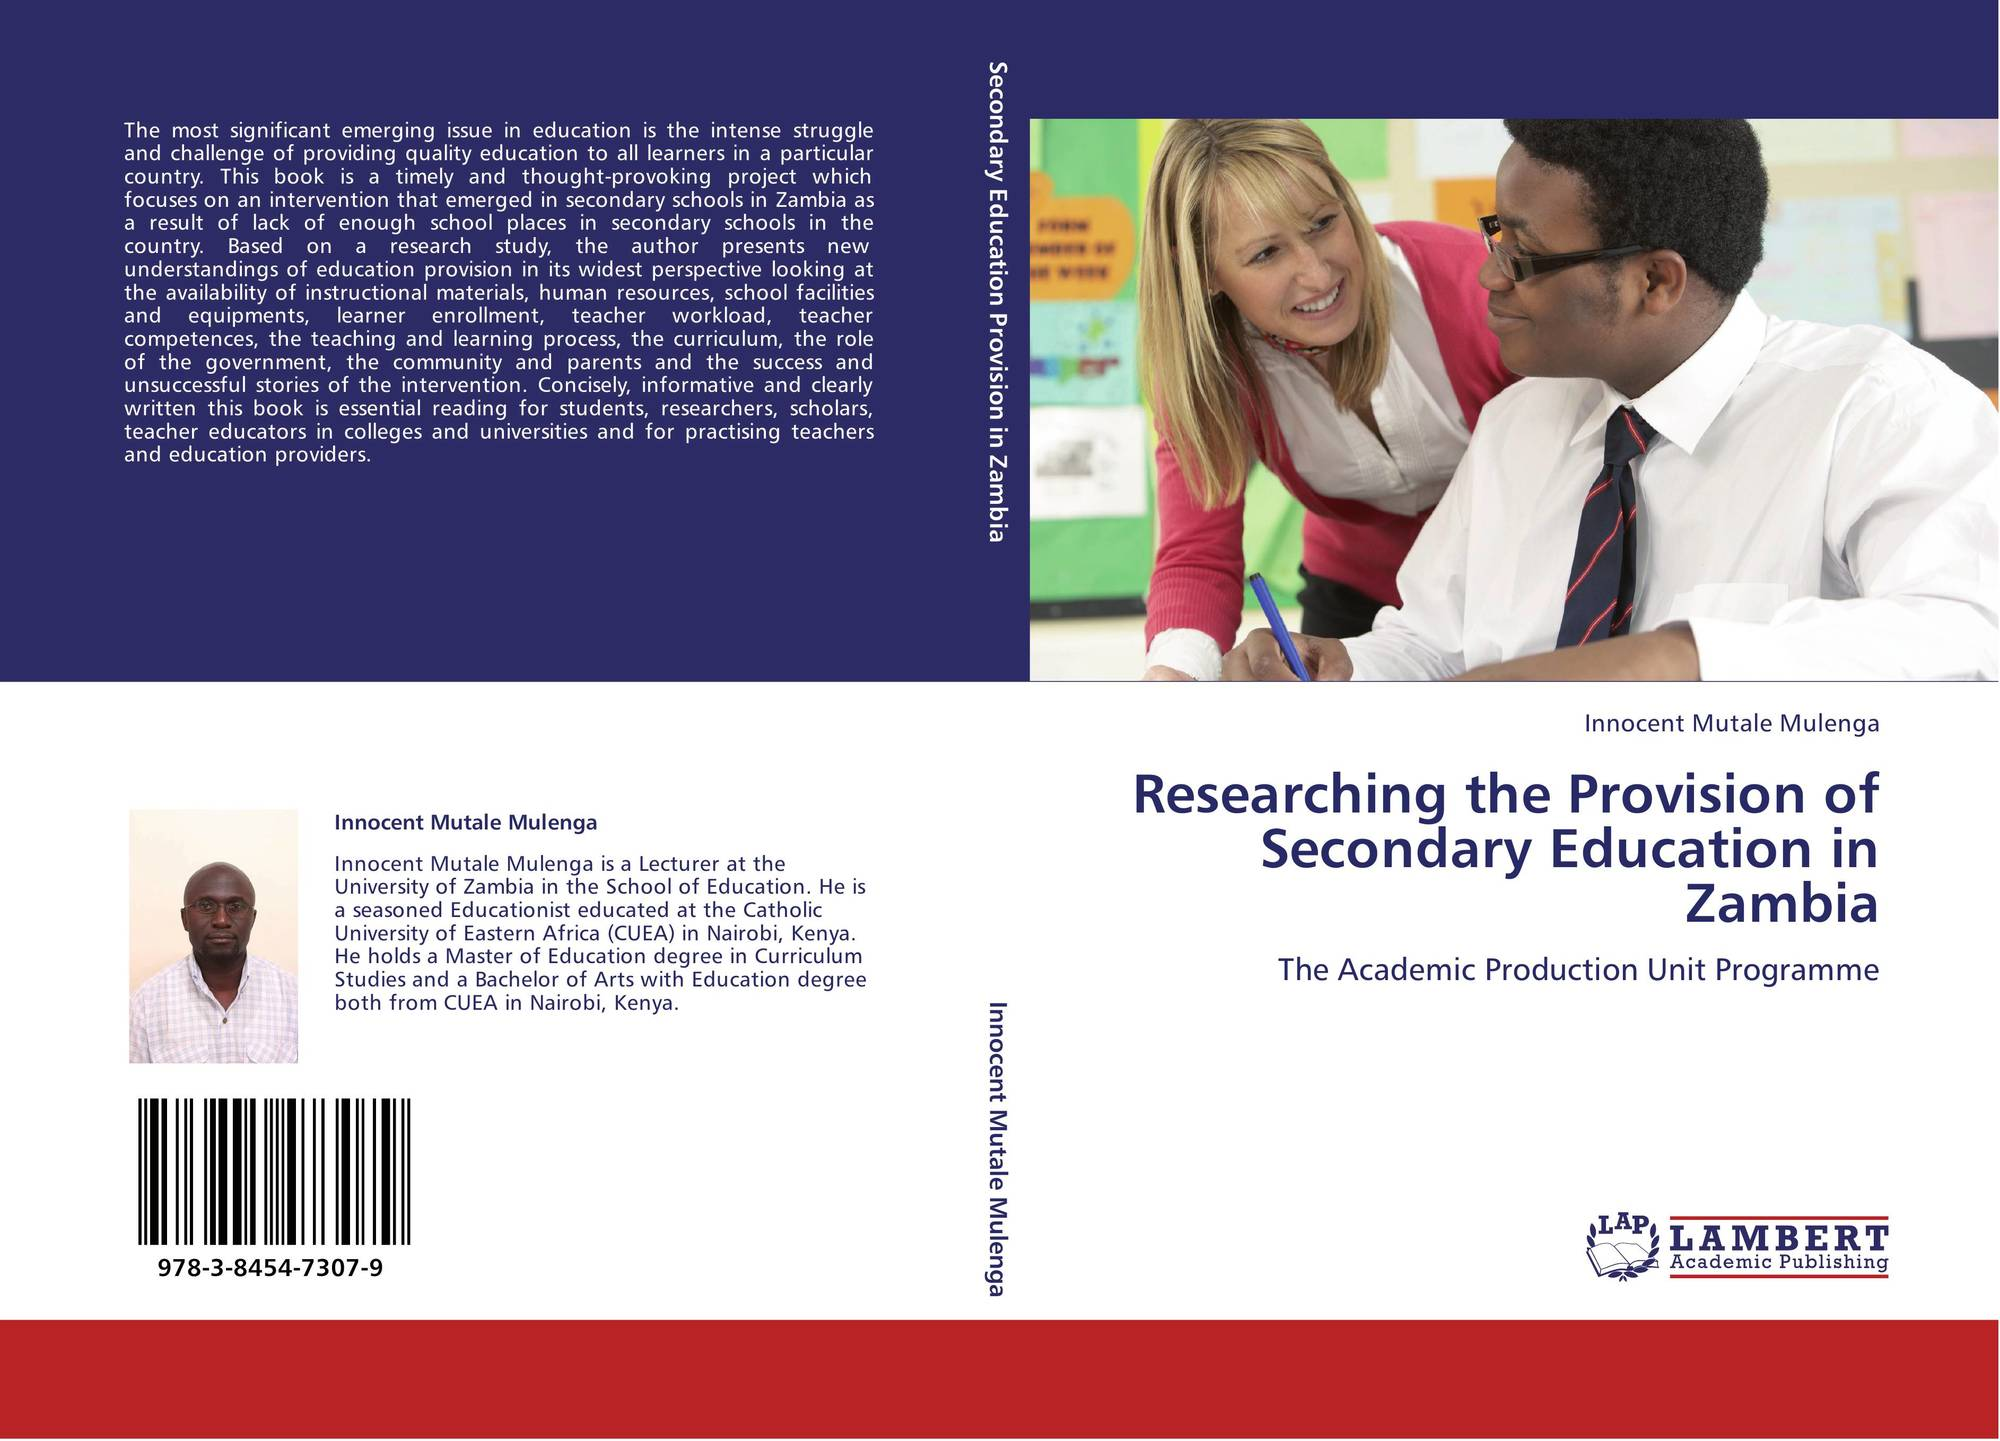 synthesis paper on secondary education Add tags for synthesis of invited papers : elementary/secondary education data redesign project : a public discussion draft be the first.